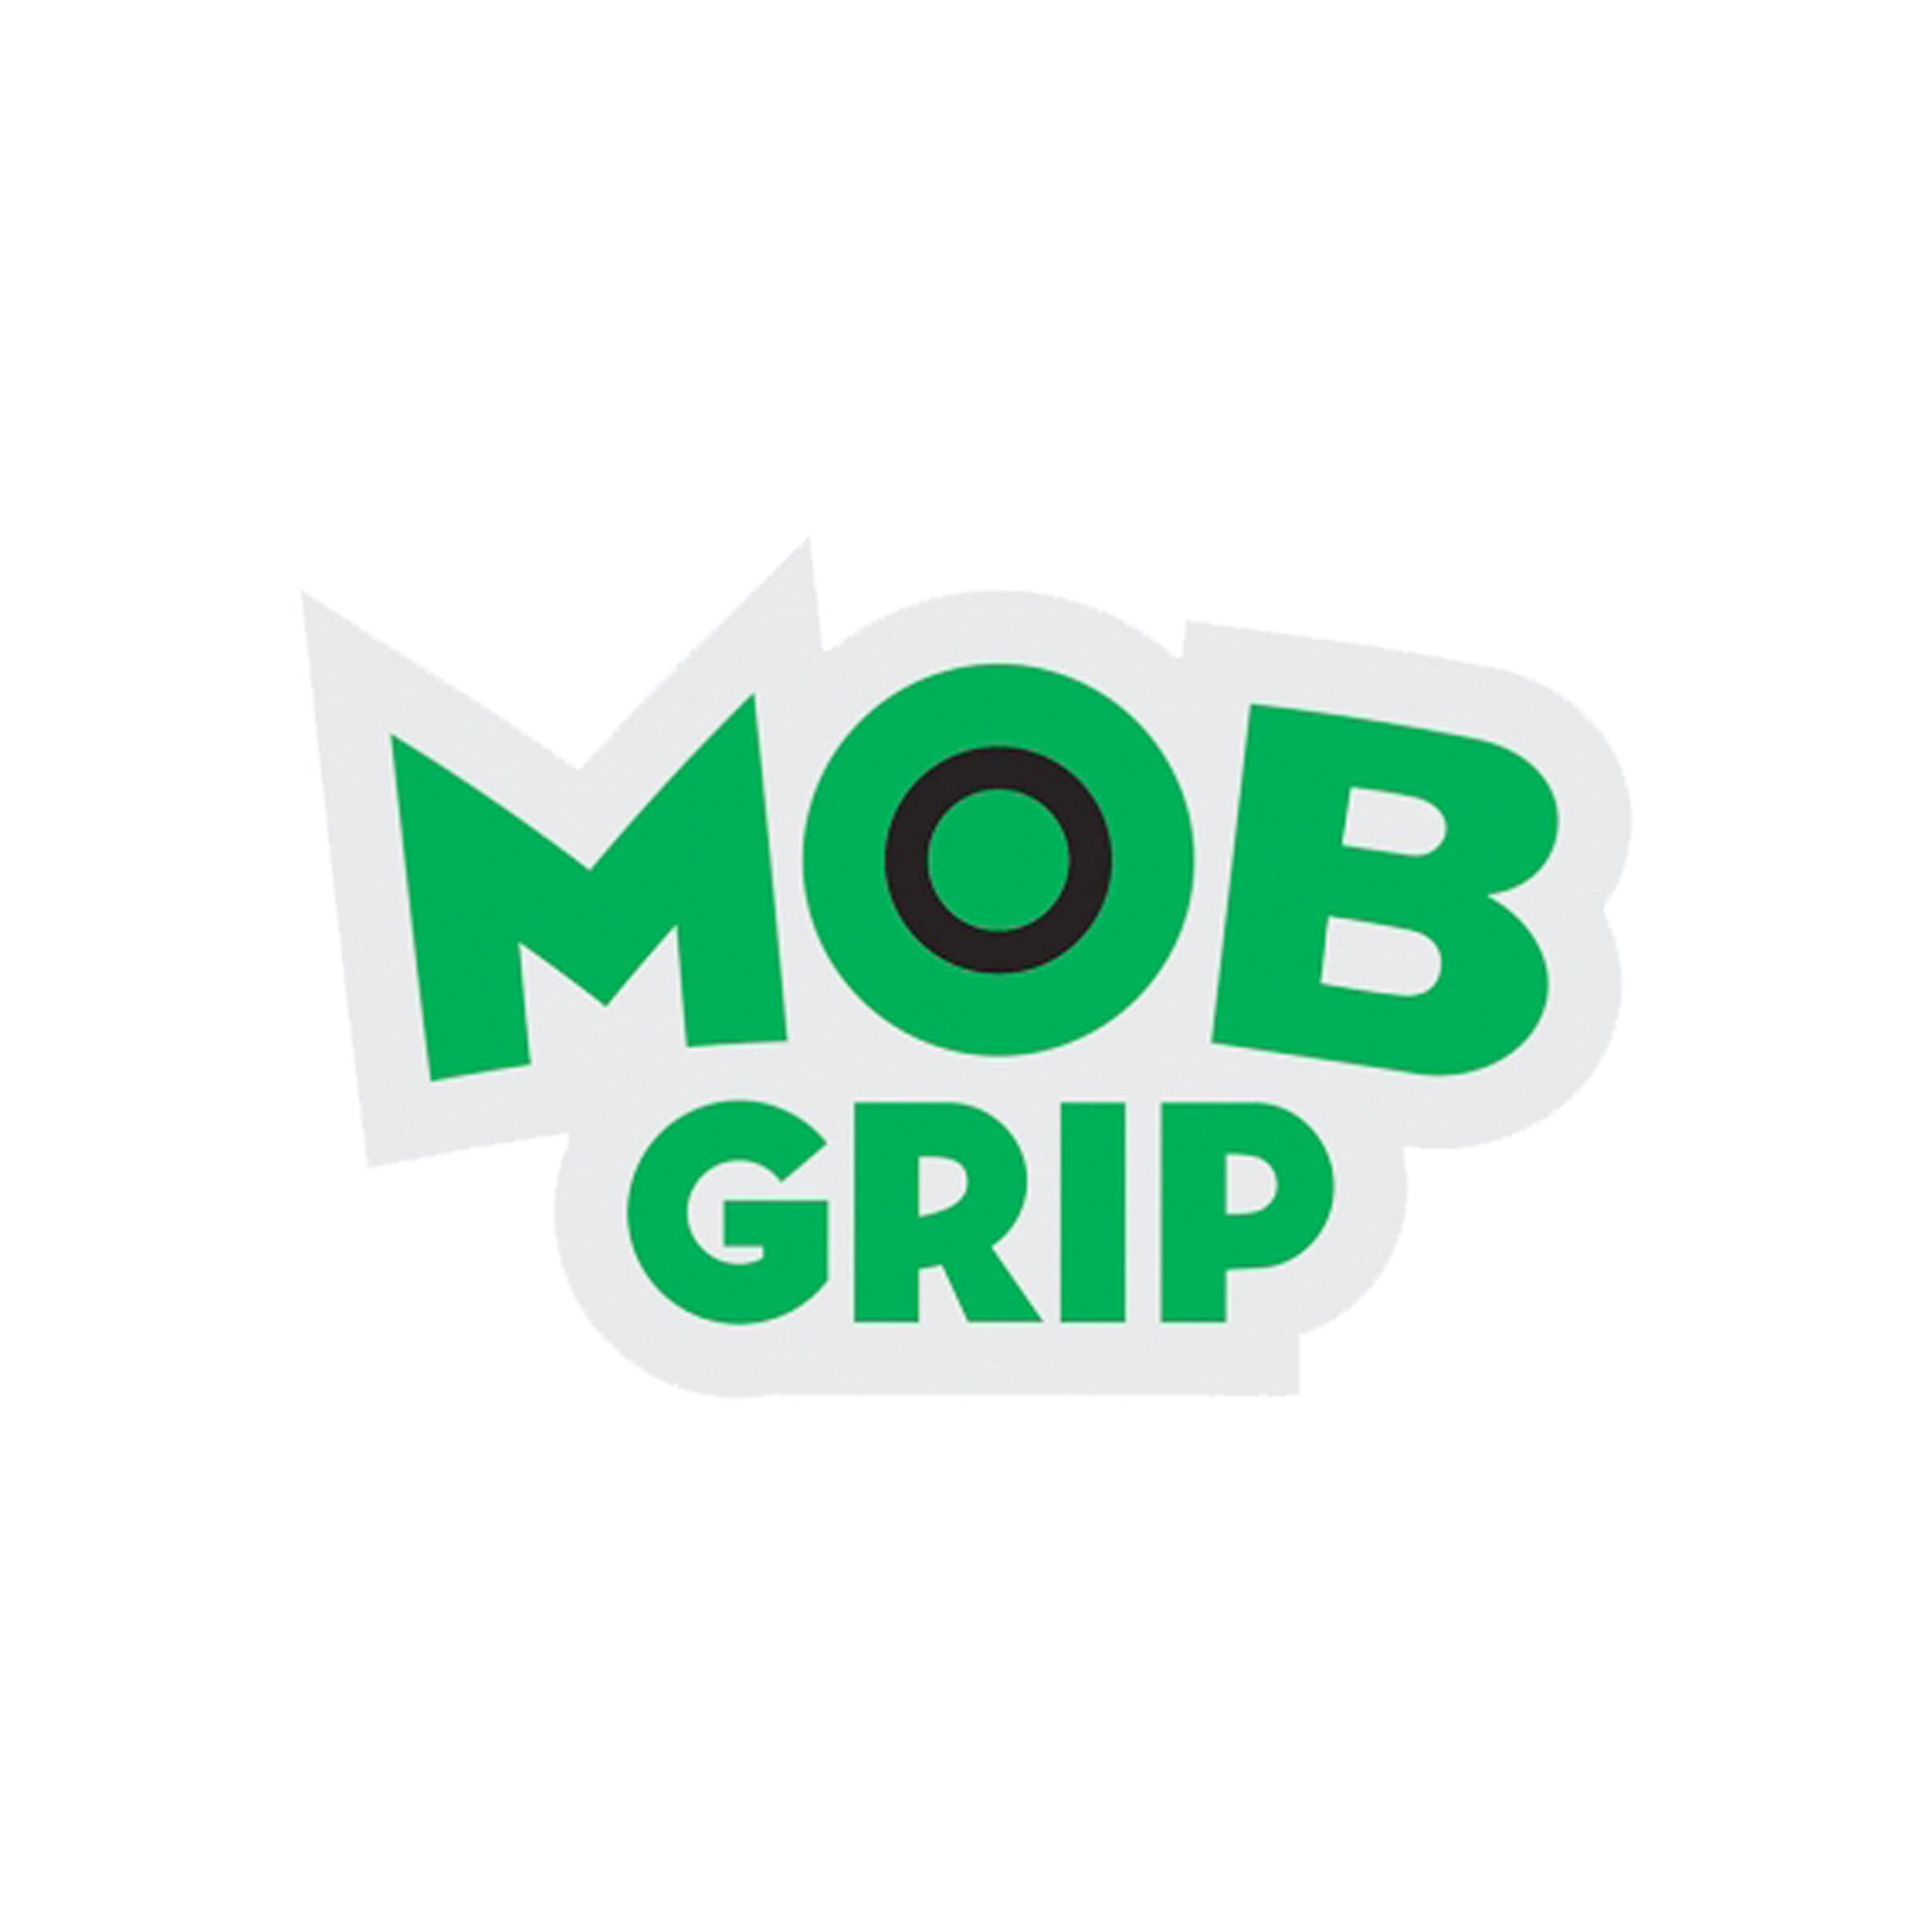 "MOB Grip Logo 3.25"" x 2.125"" Decal - Green/Black"